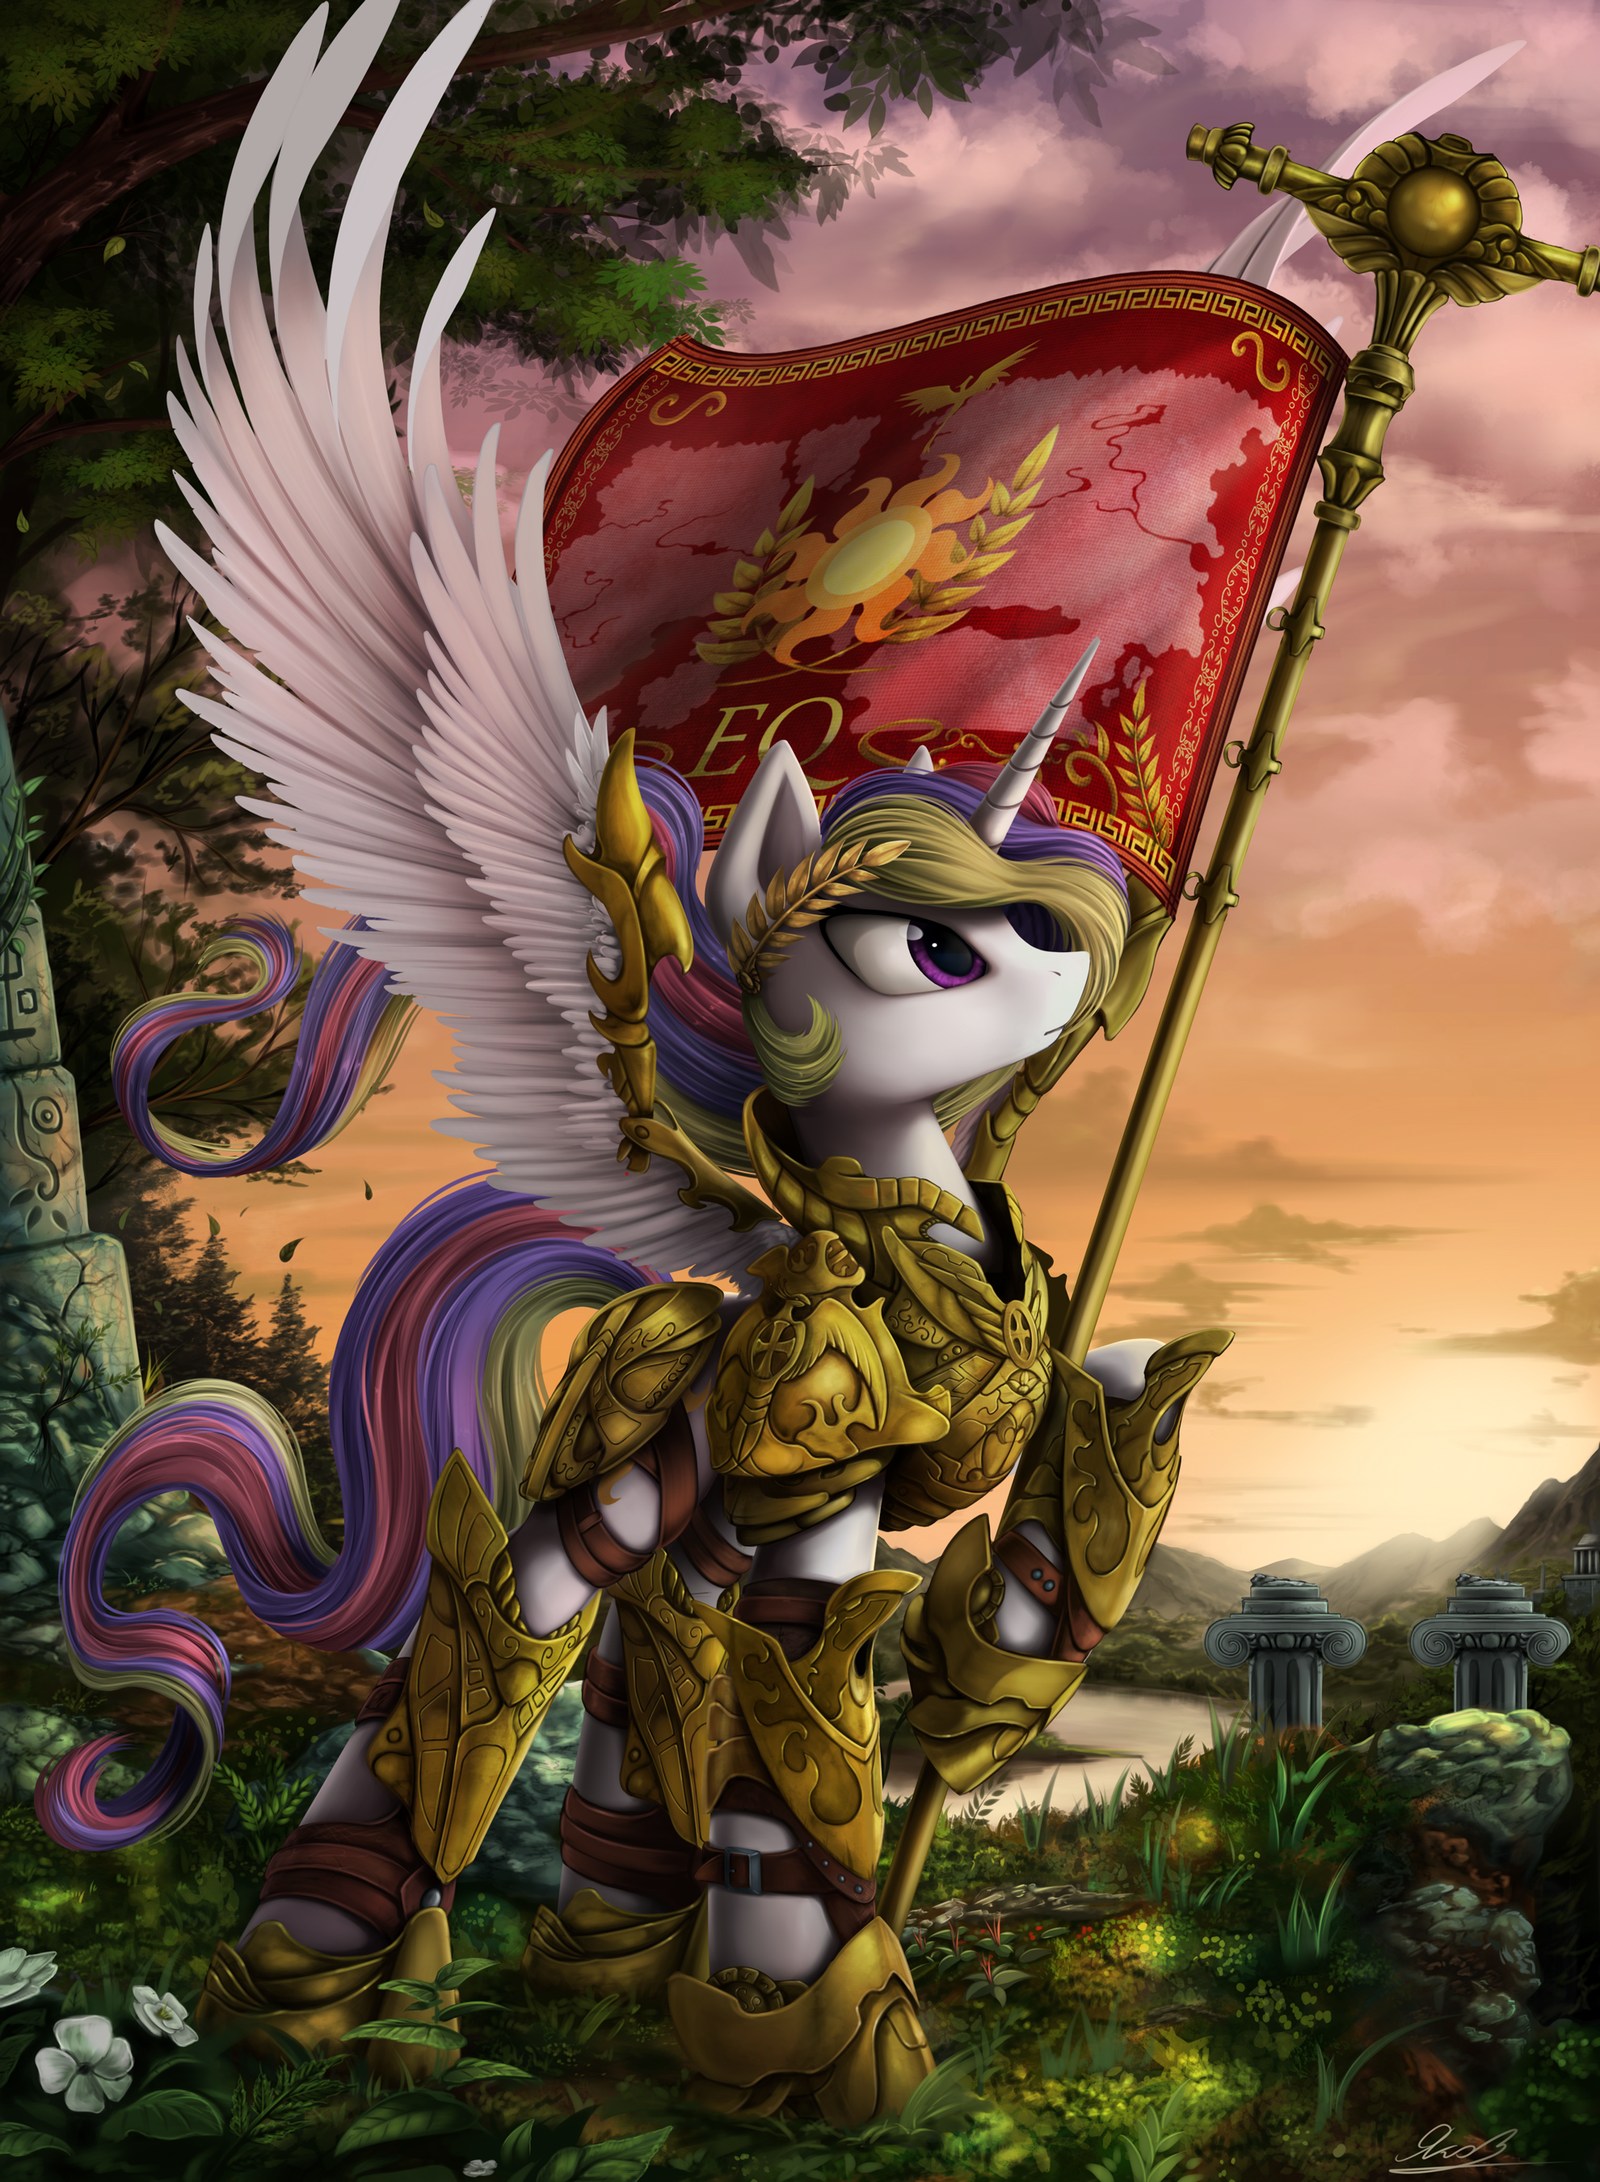 empress of all of equestria by yakovlev